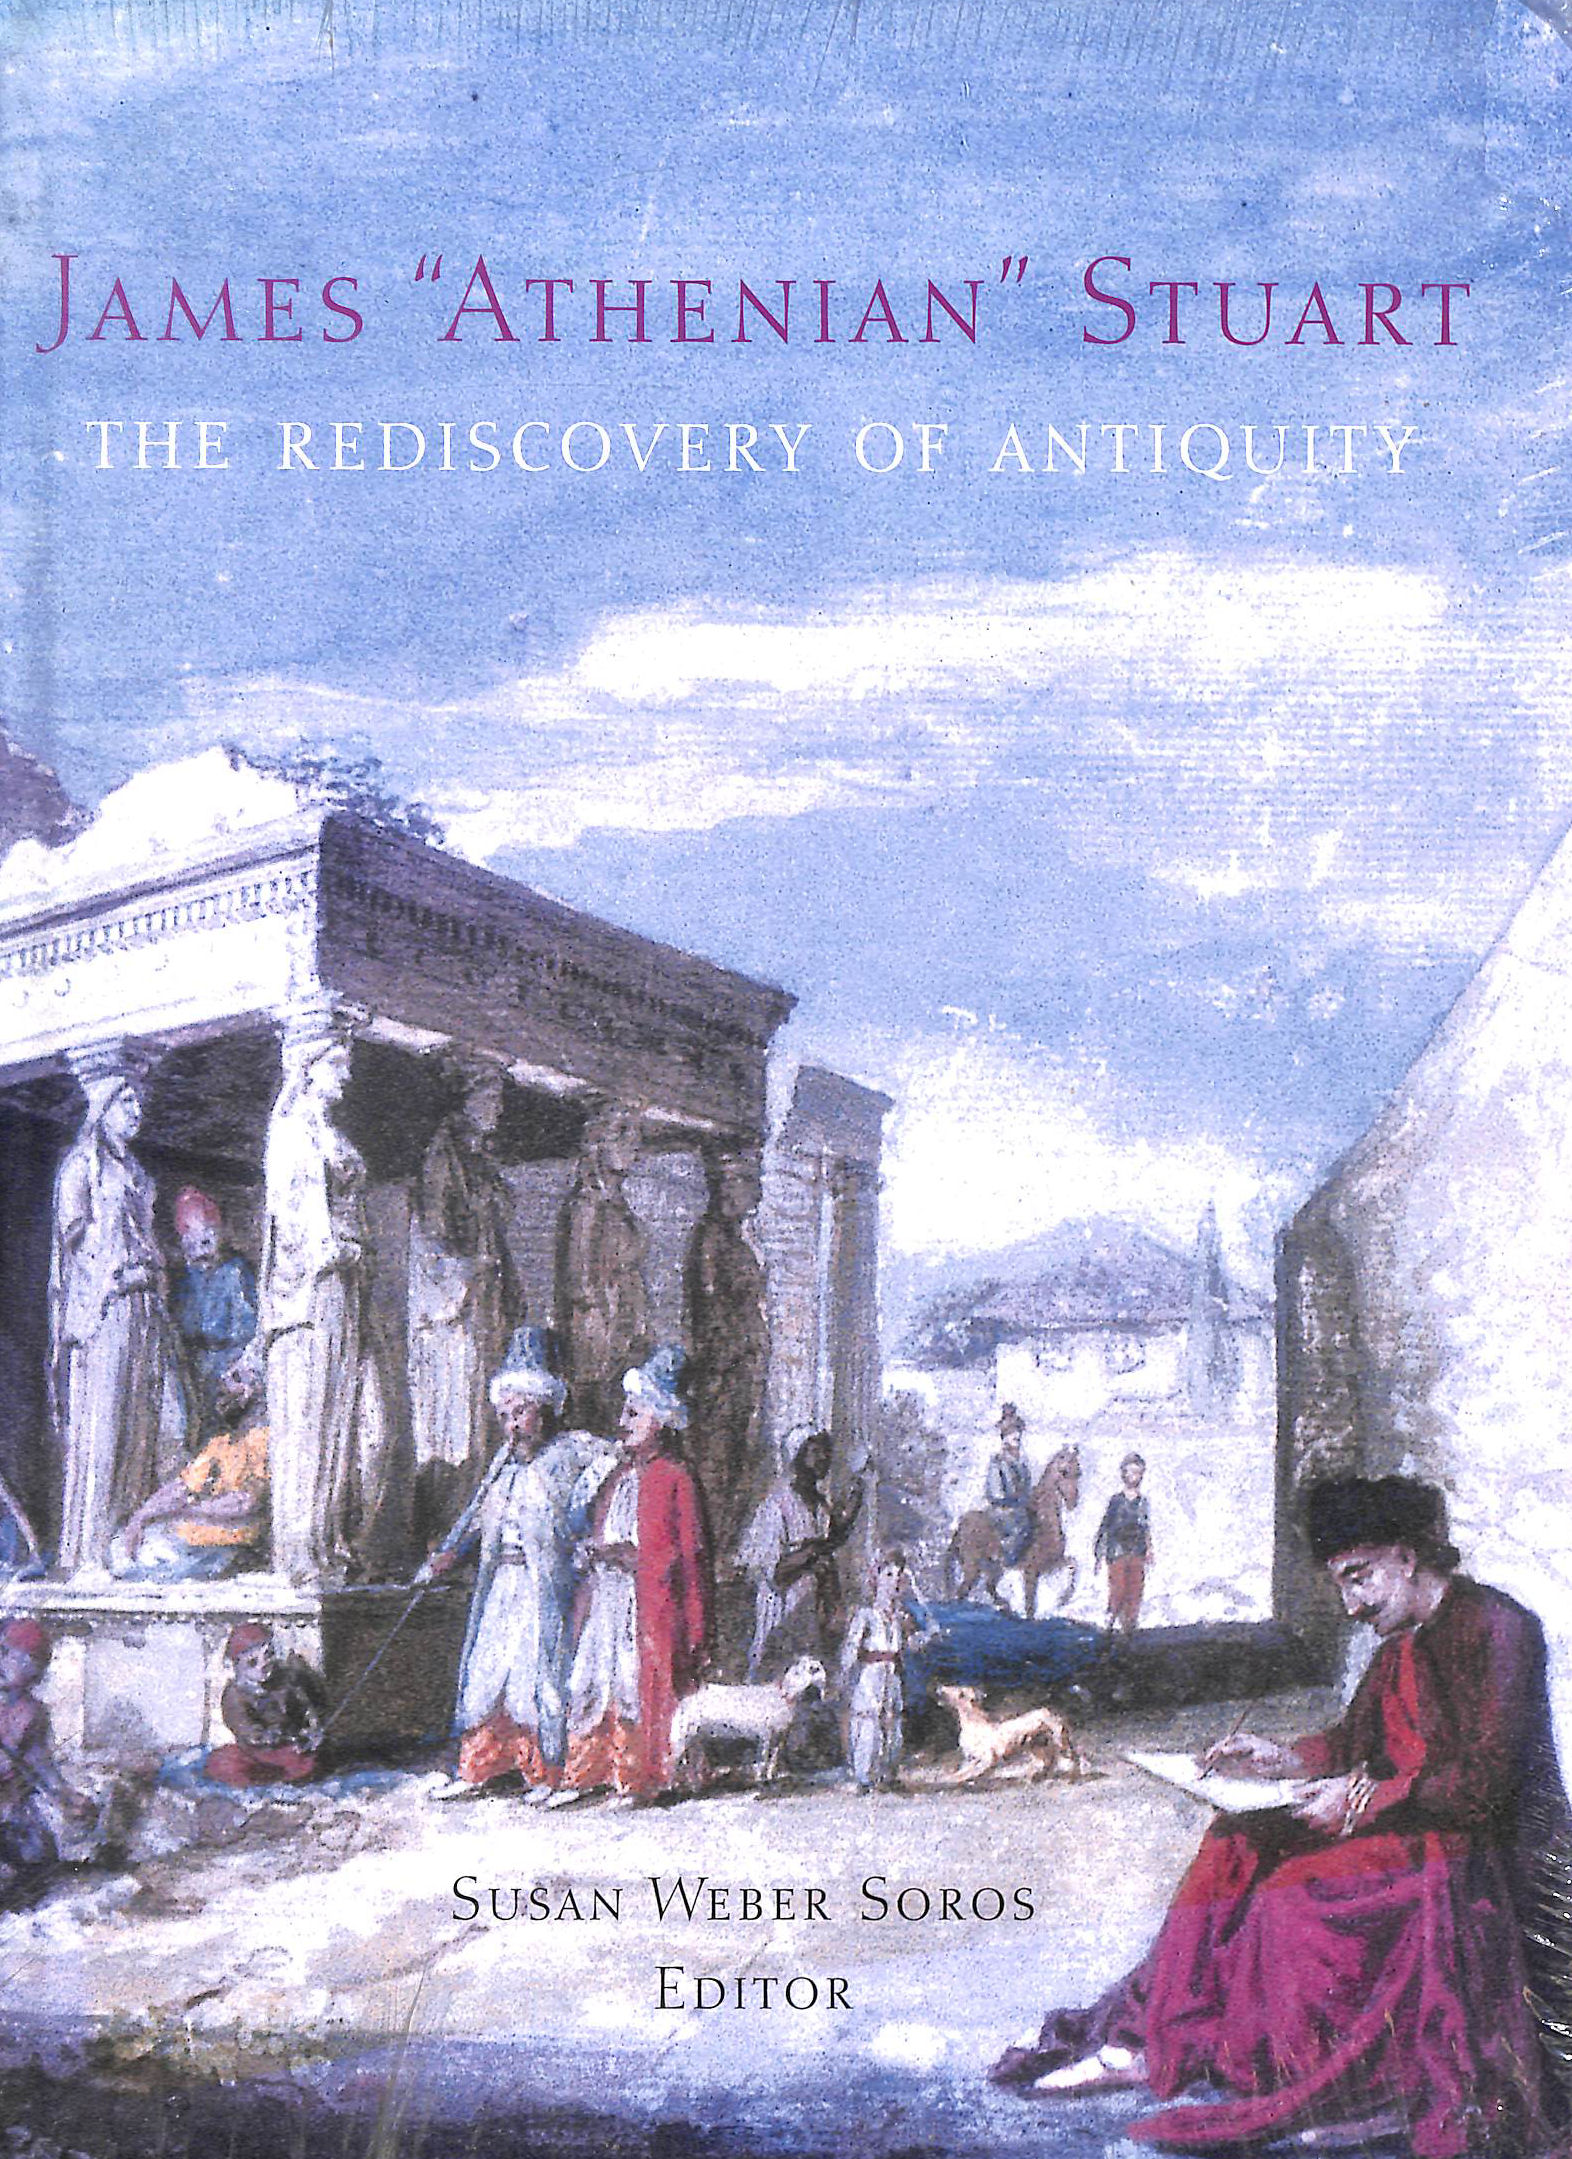 Image for James 'Athenian' Stuart: The Rediscovery of Antiquity (Bard Graduate Center for Studies in the Decorative Arts, Design & Culture) (Bard Graduate ... in the Decorative Arts, Design & Culture)